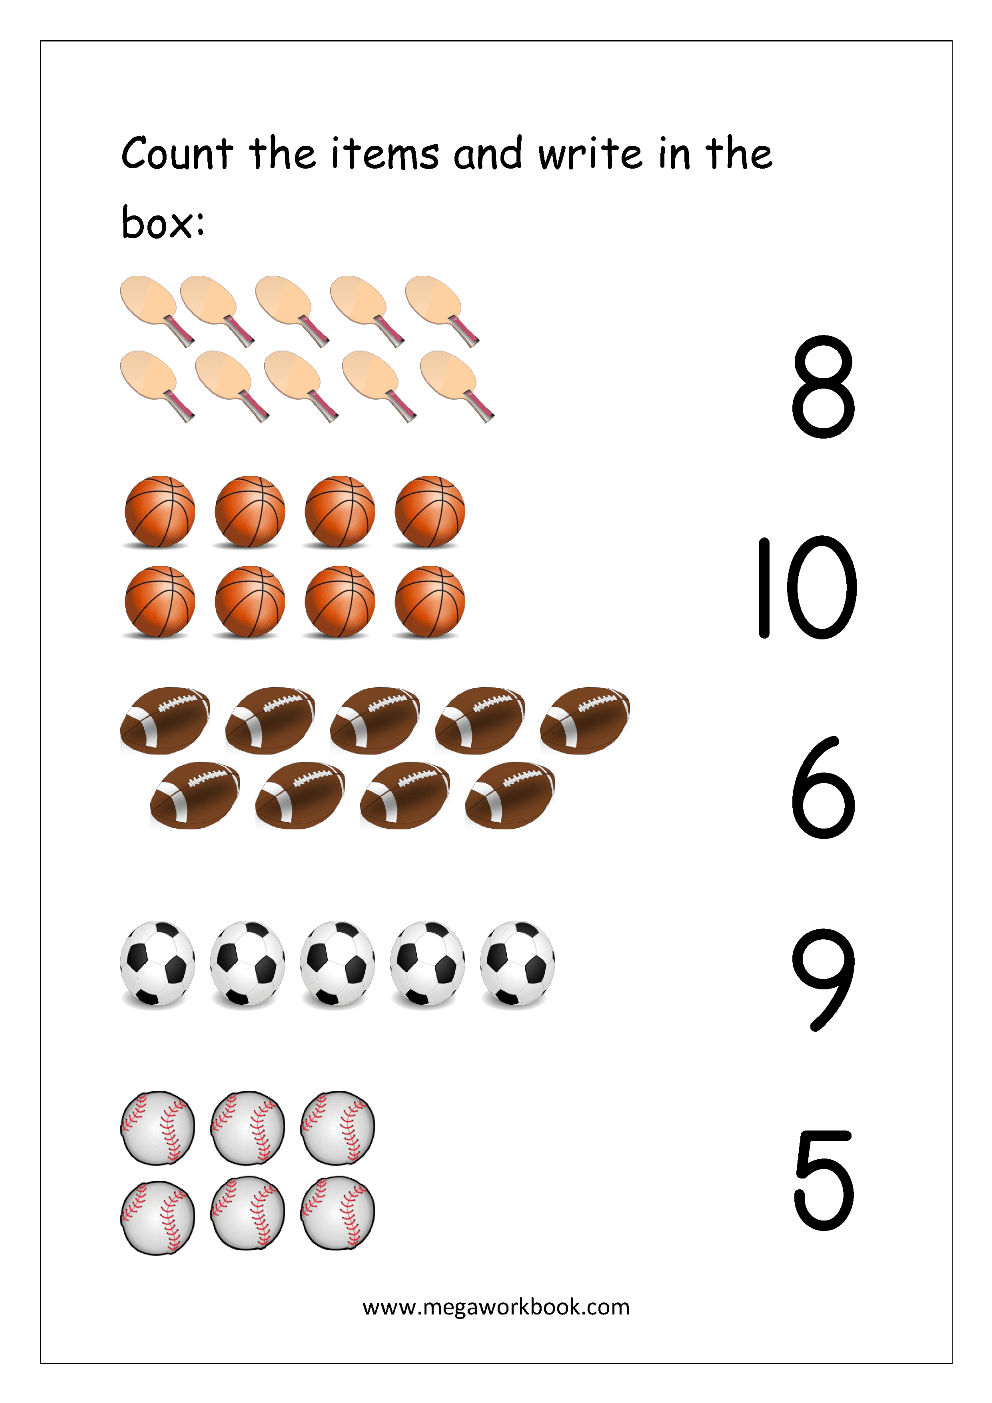 hight resolution of Free Printable Number Matching Worksheets For Kindergarten And Preschool -  Count And Match (1-10) - MegaWorkbook